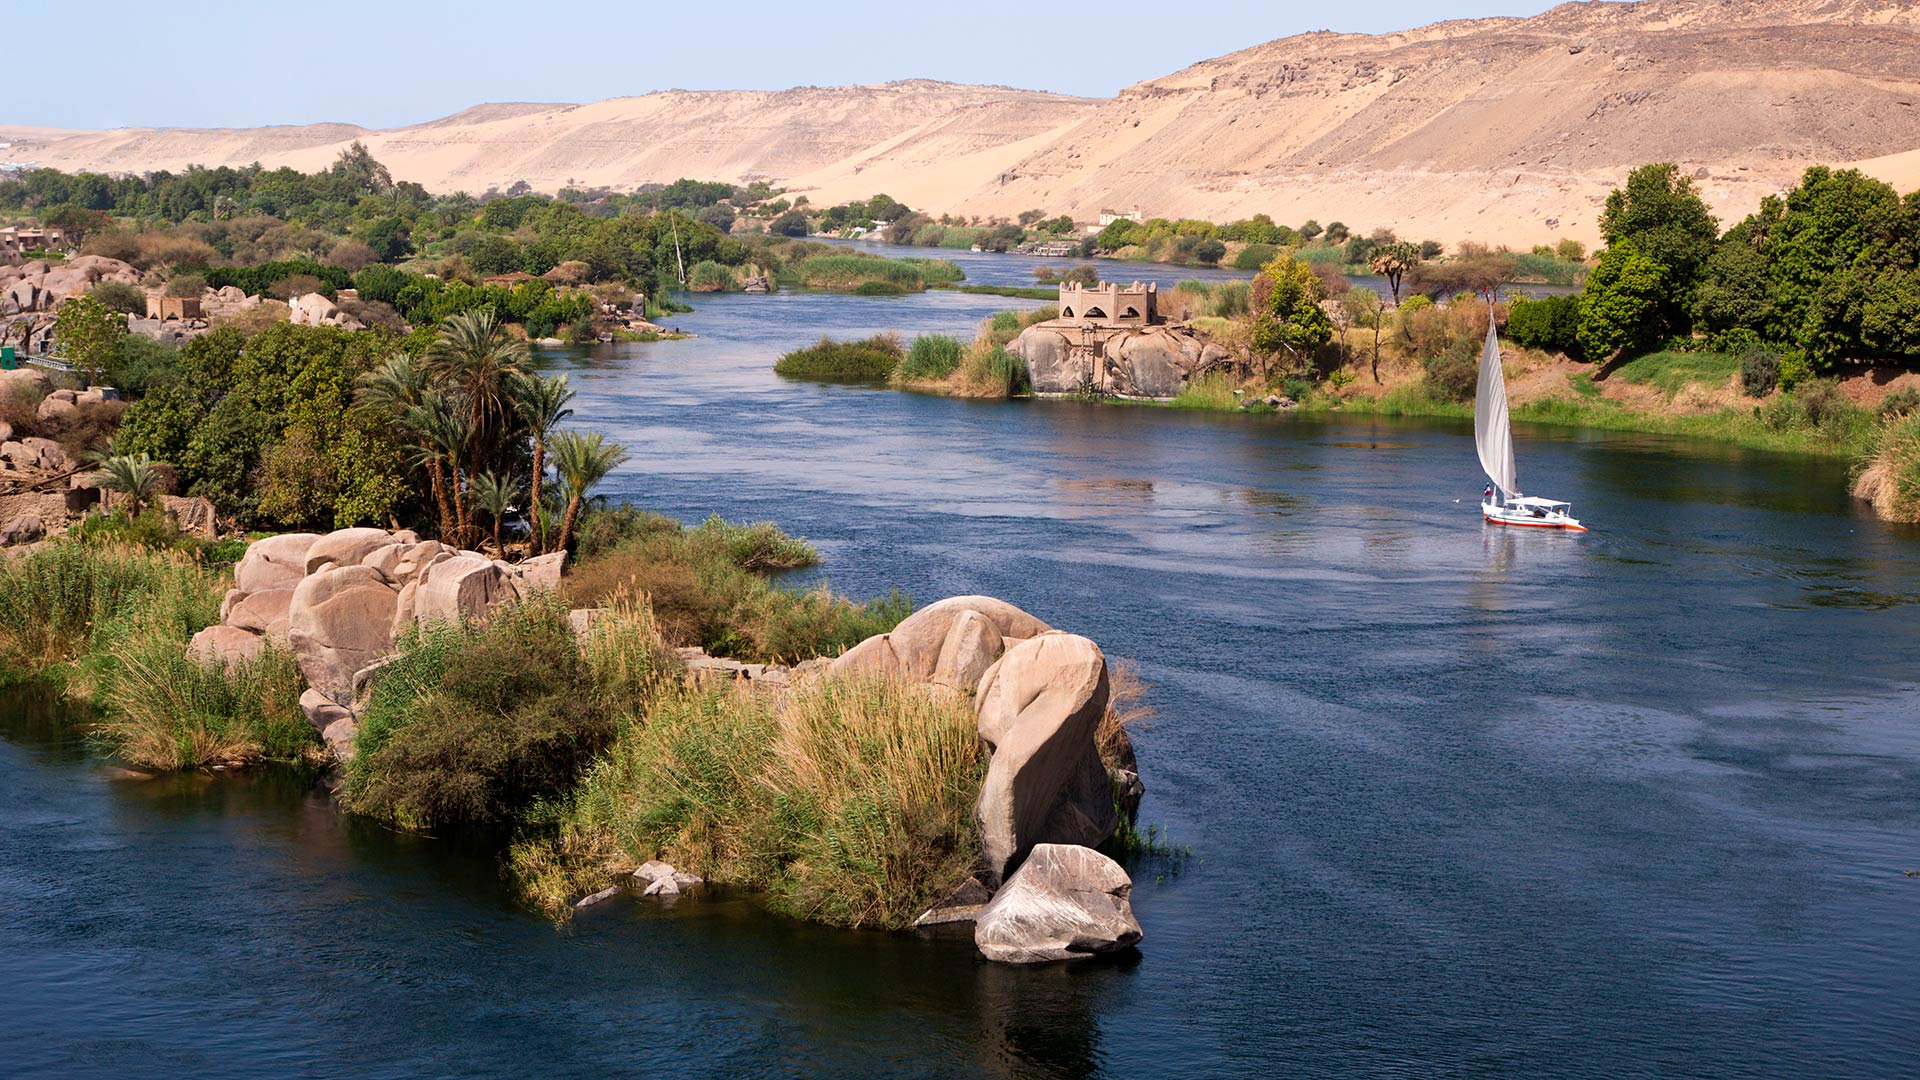 A felucca (wooden sailboat) on the Nile River near Aswan, Egypt